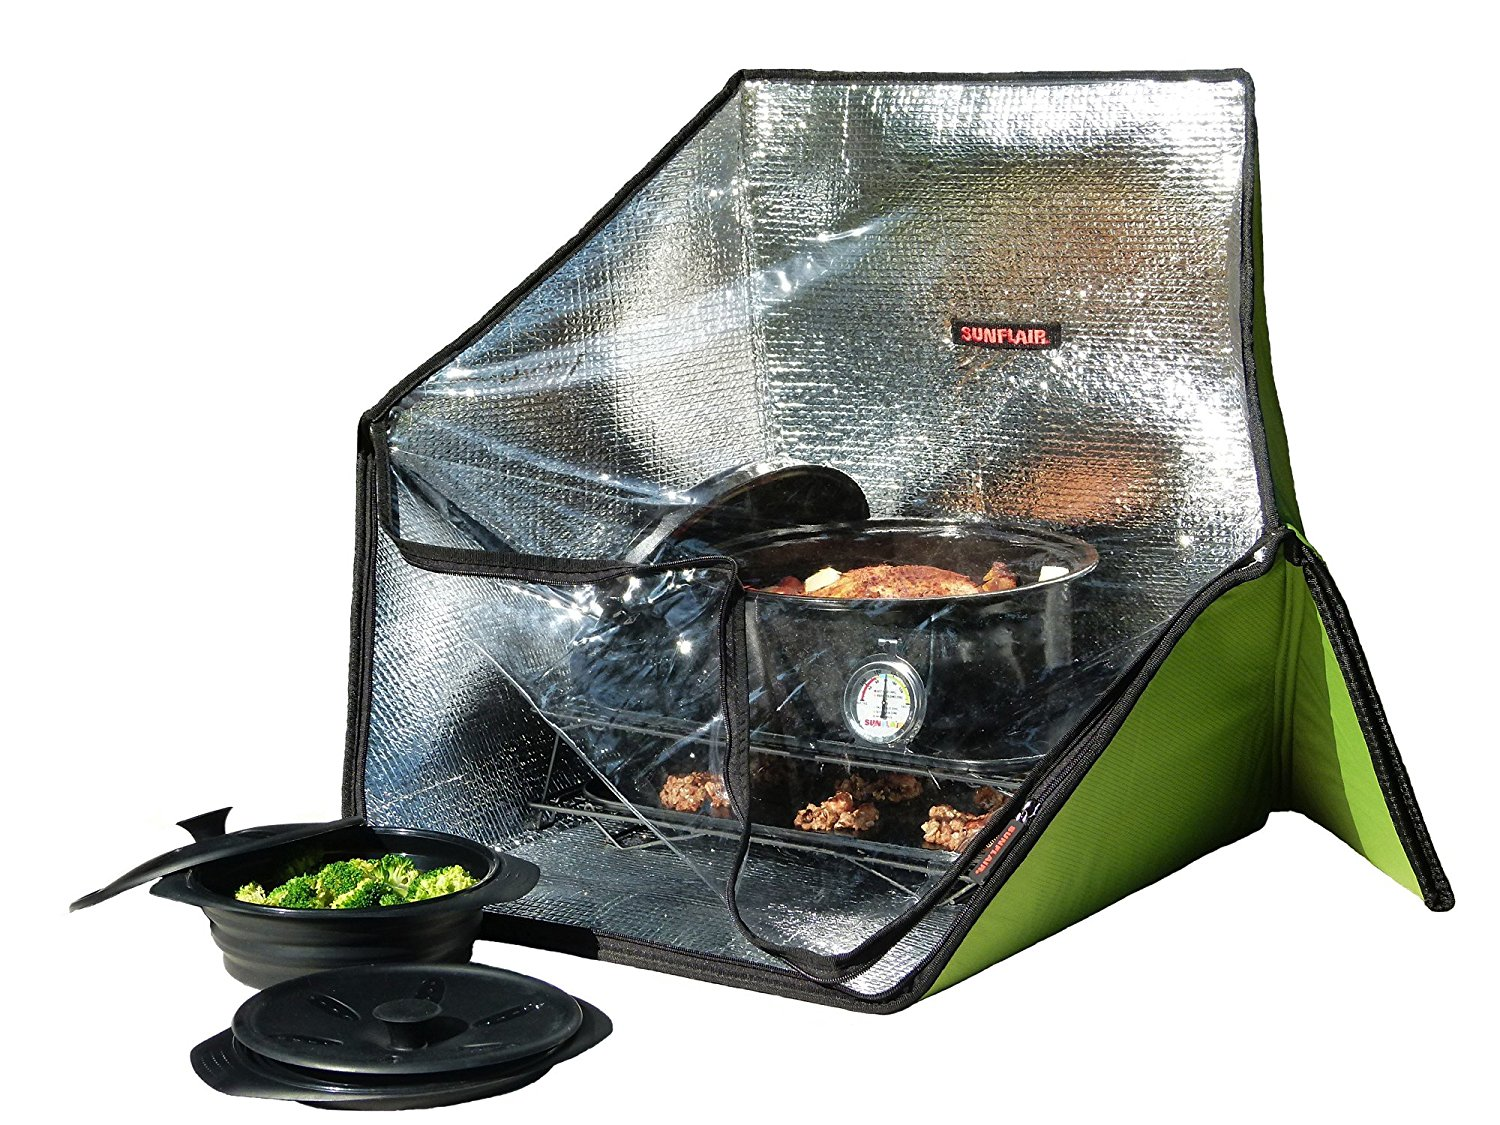 sunflair, solar oven, solar cooker, camping